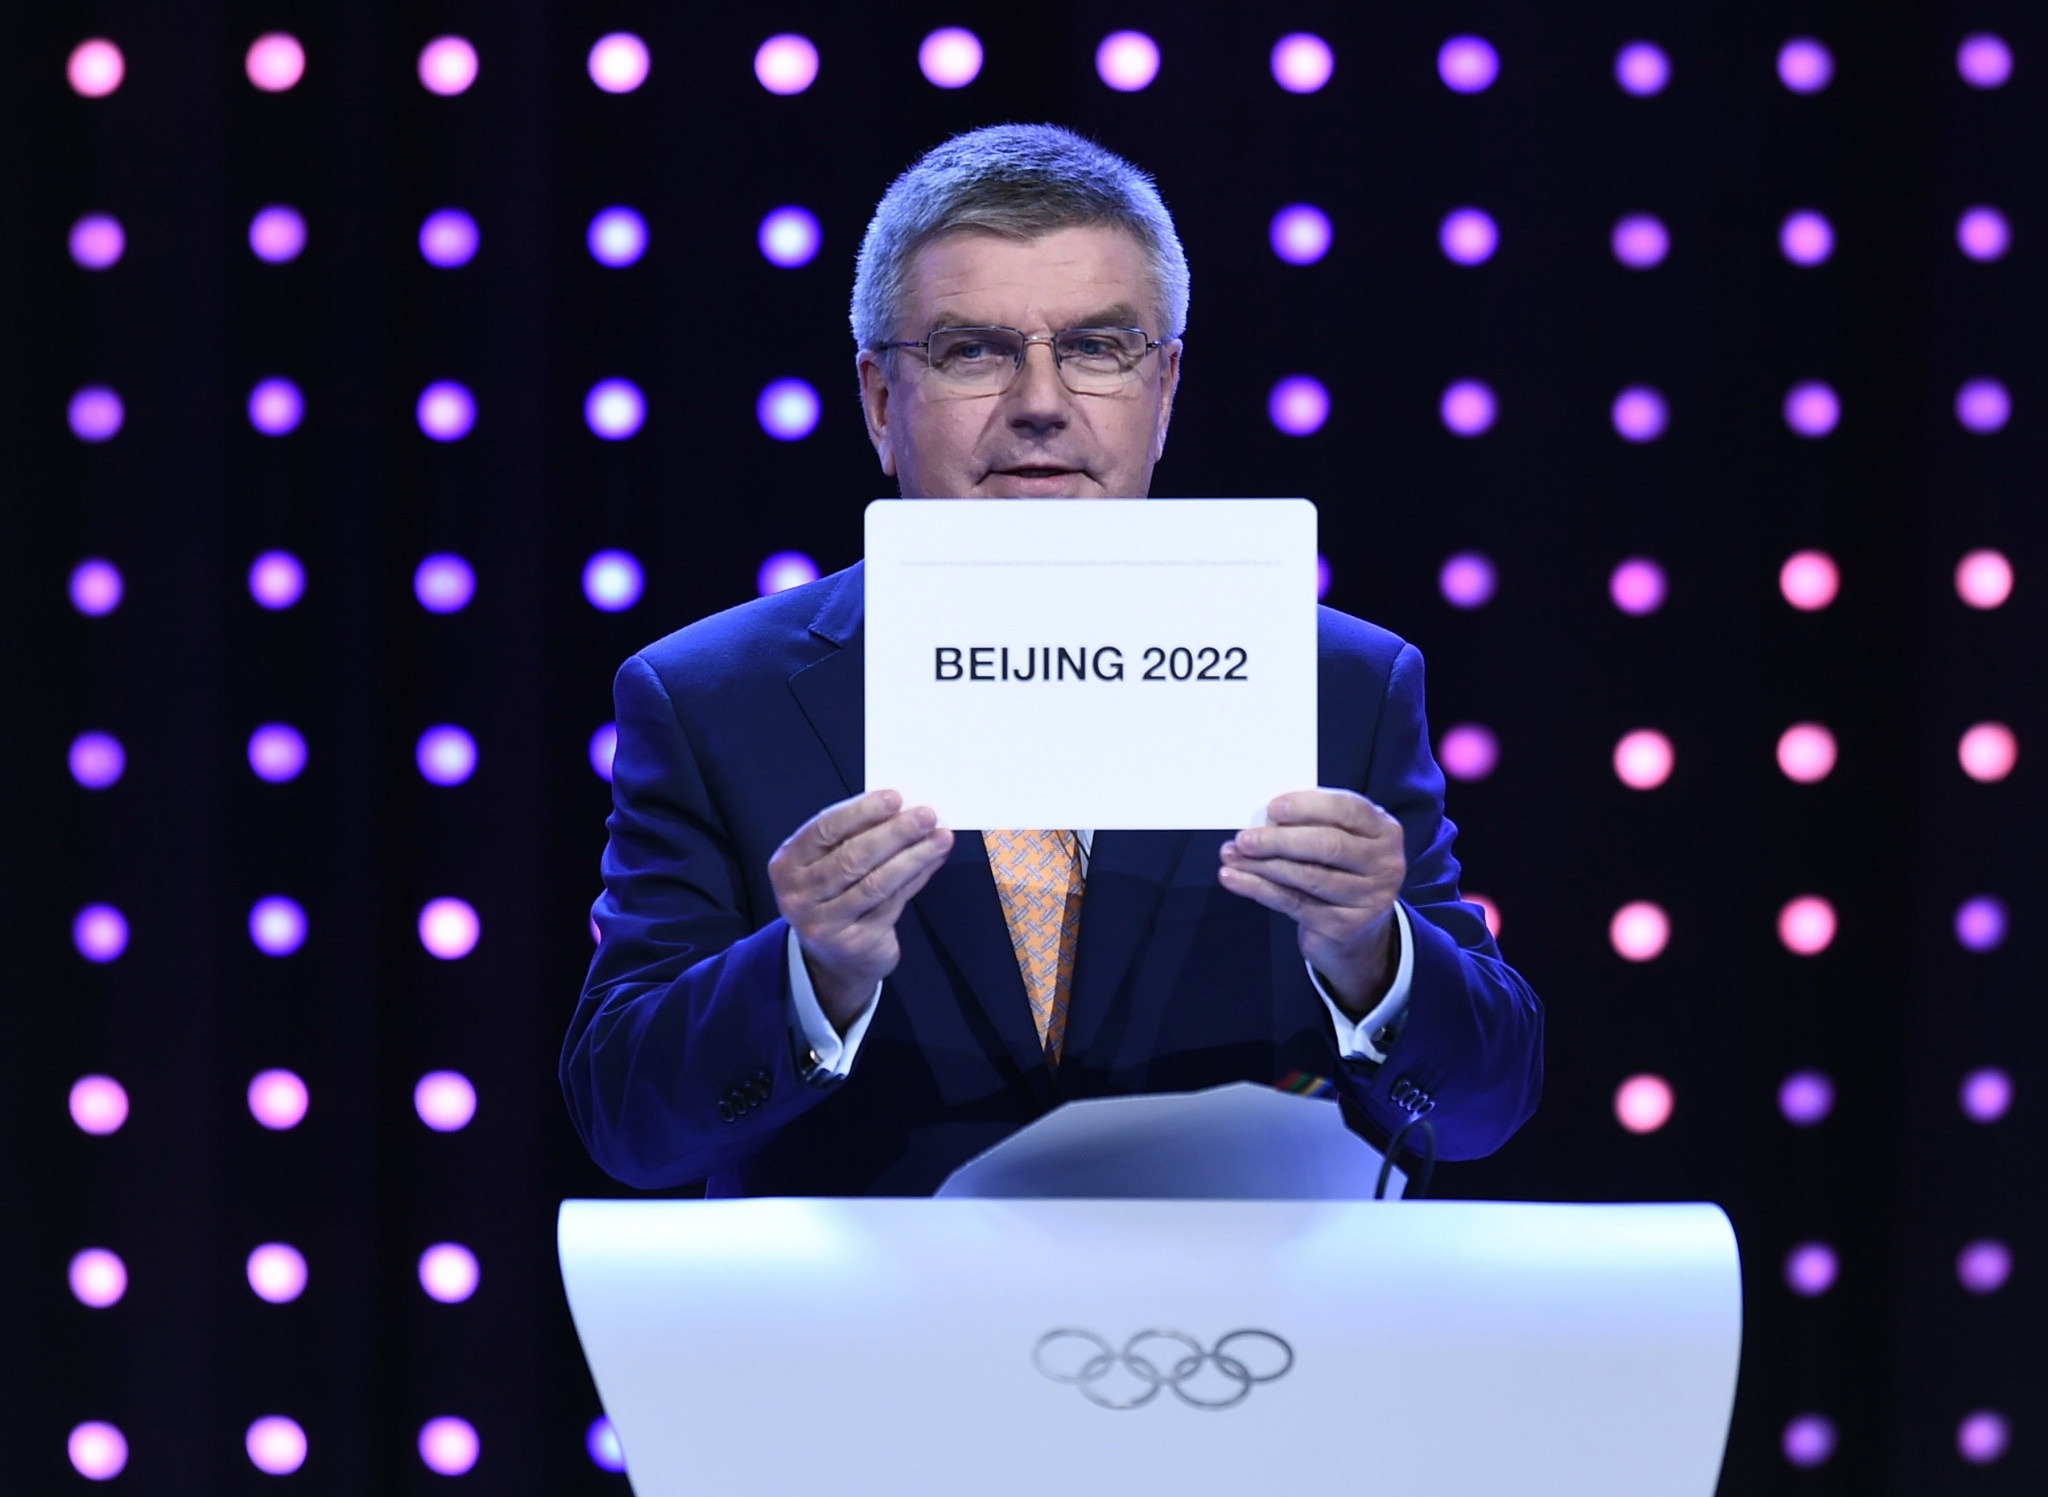 IOC President Thomas Bach revealed Beijing as hosts of the 2022 Winter Olympic and Paralympic Games at the 2015 IOC Session in Kuala Lumpur ©Getty Images